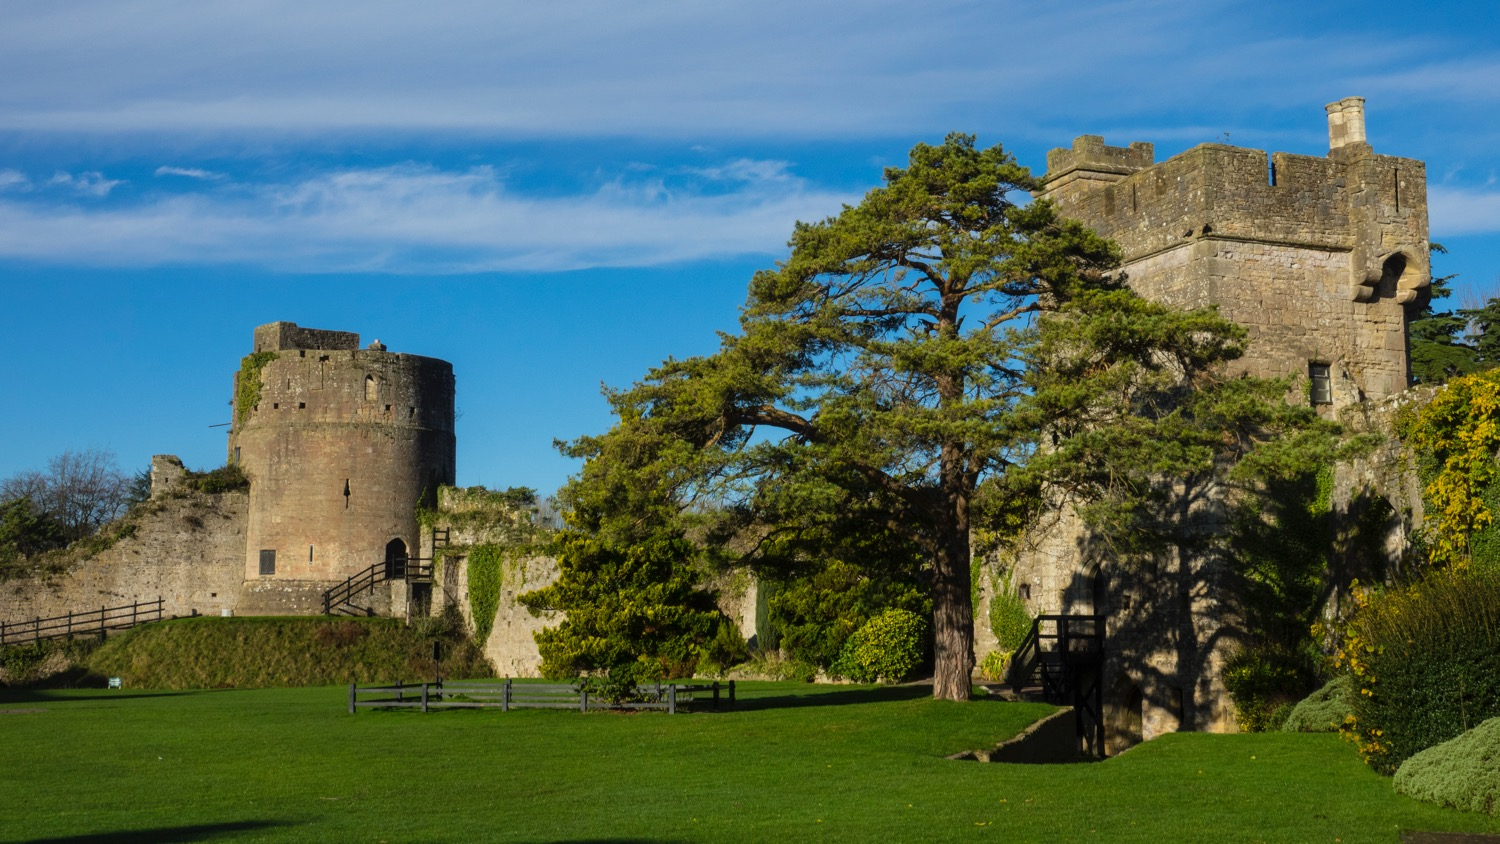 Inside the main gates, there was a lovely lawn and access to more of the fortifications.